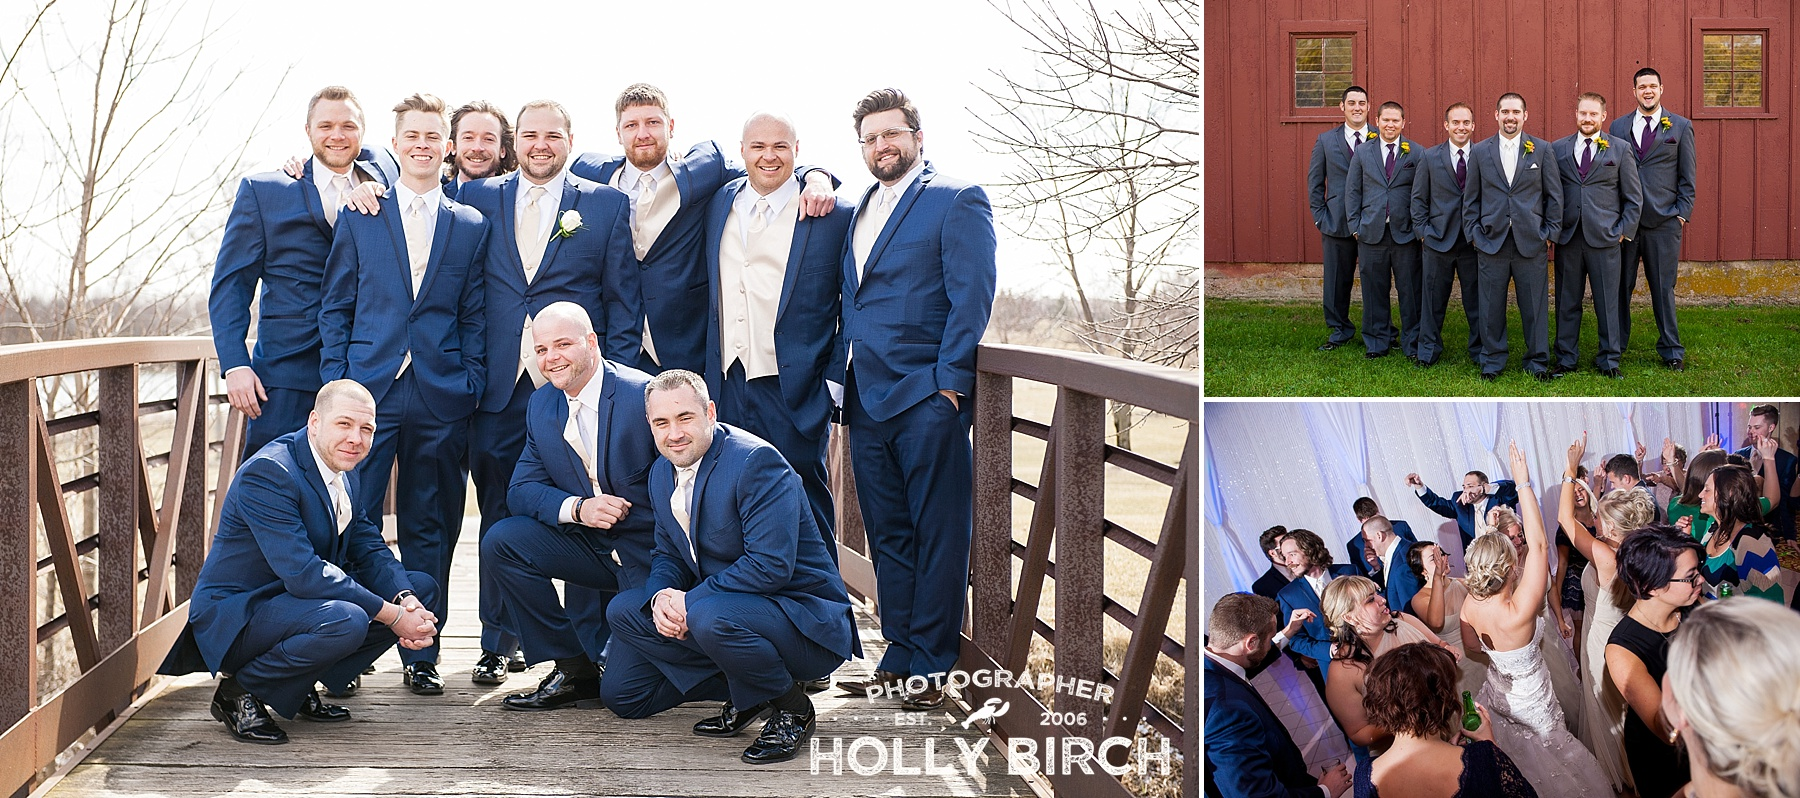 groomsmen and ushers group photos